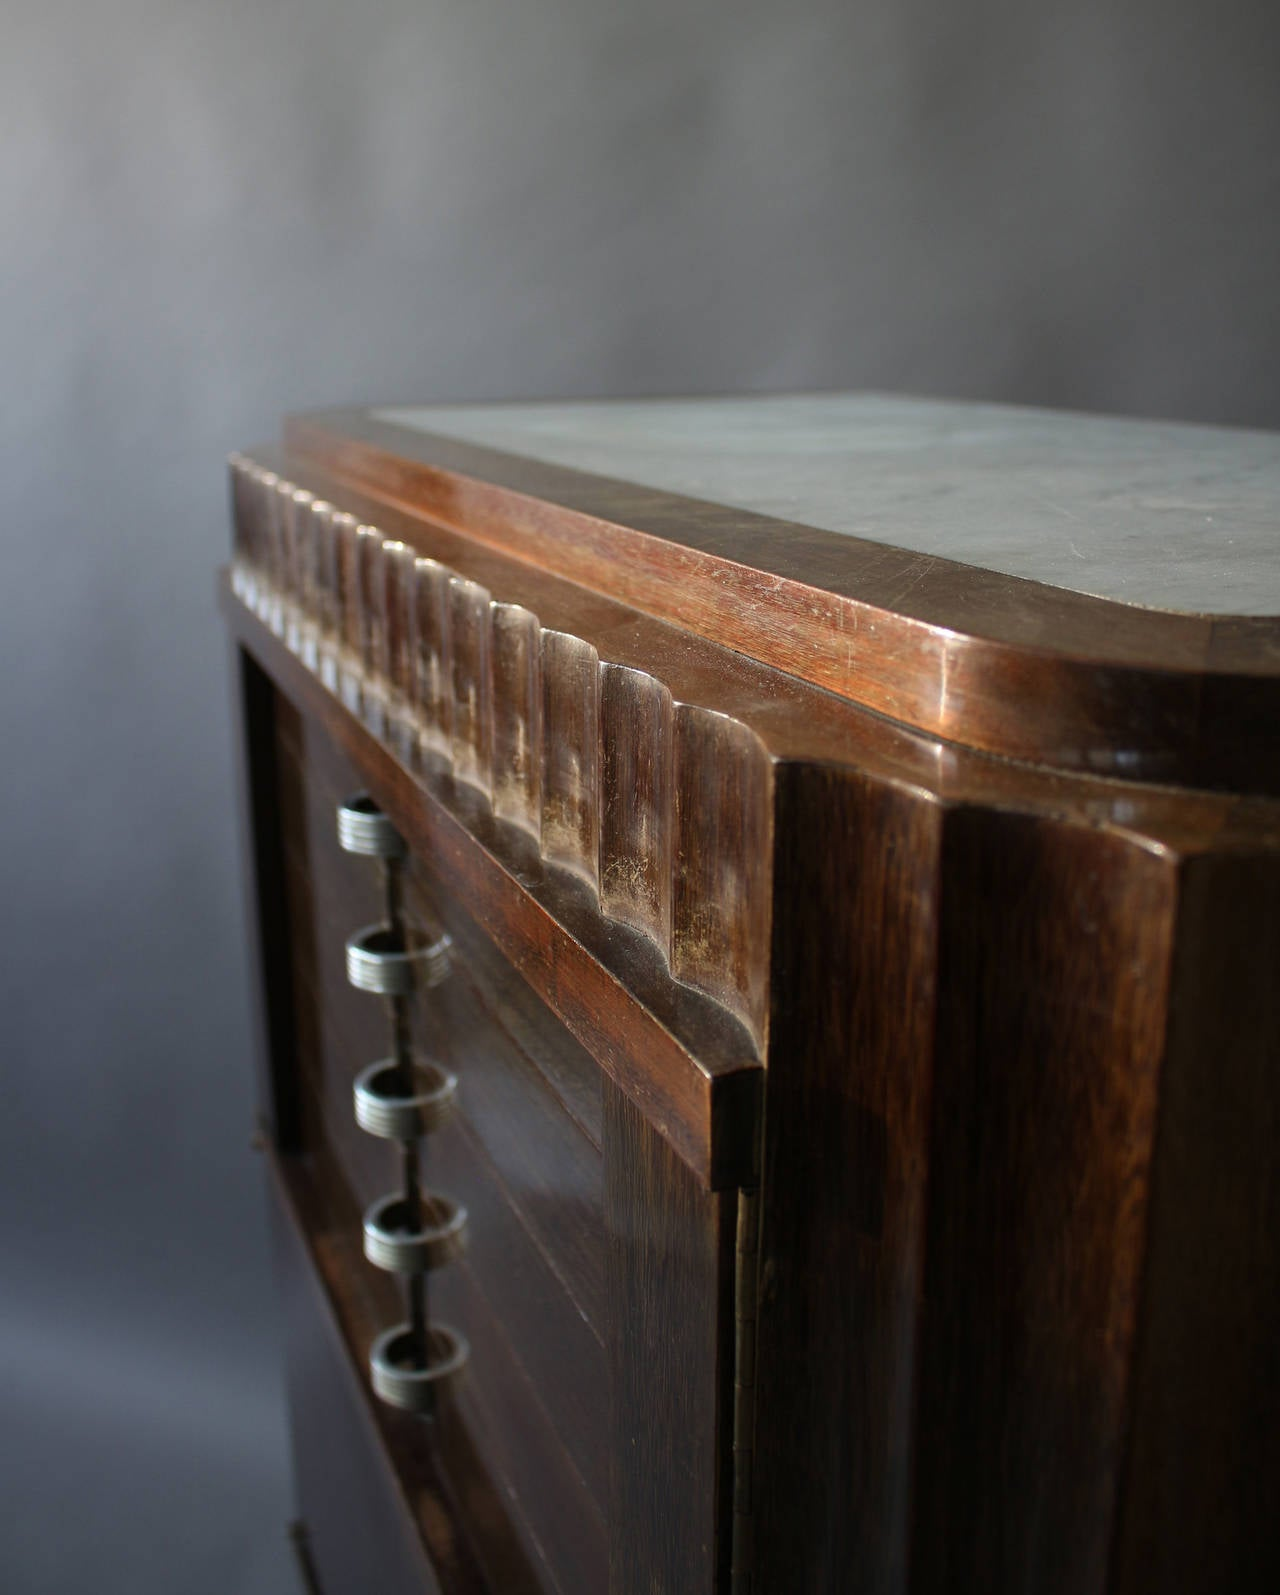 A Fine French Art Deco Silverware Cabinet by Christian Krass For Sale 5